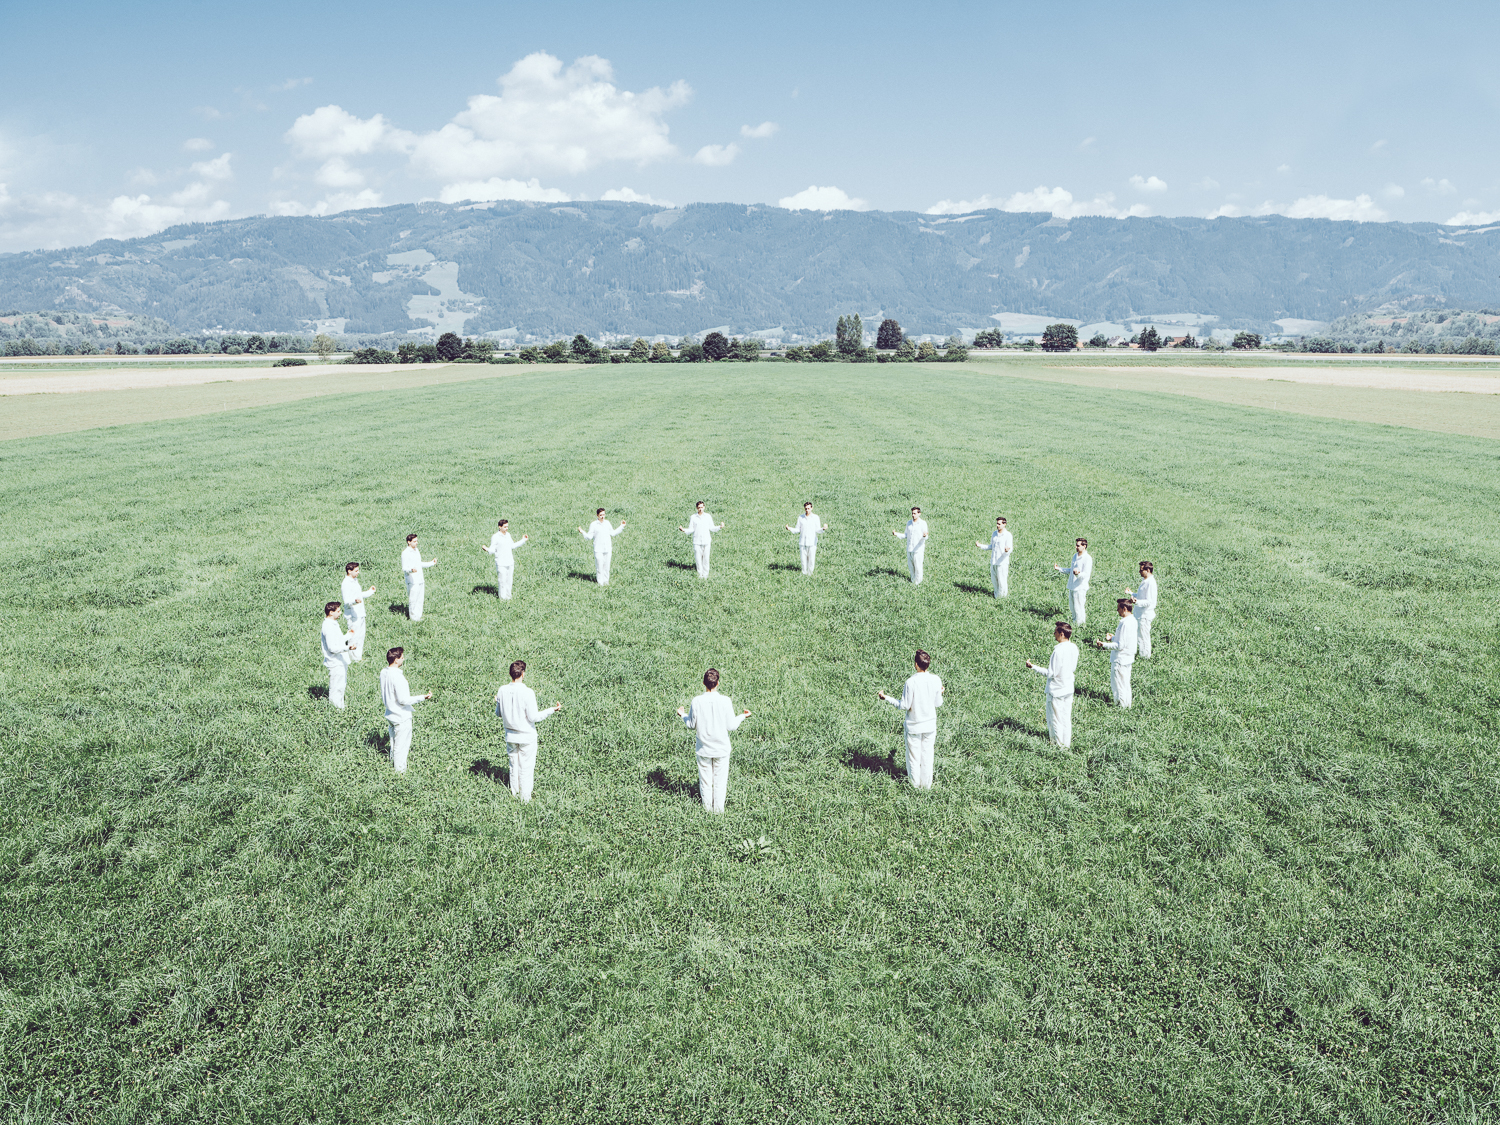 Klaus Pichler, This will change your life forever, Fotofestiwal 2019